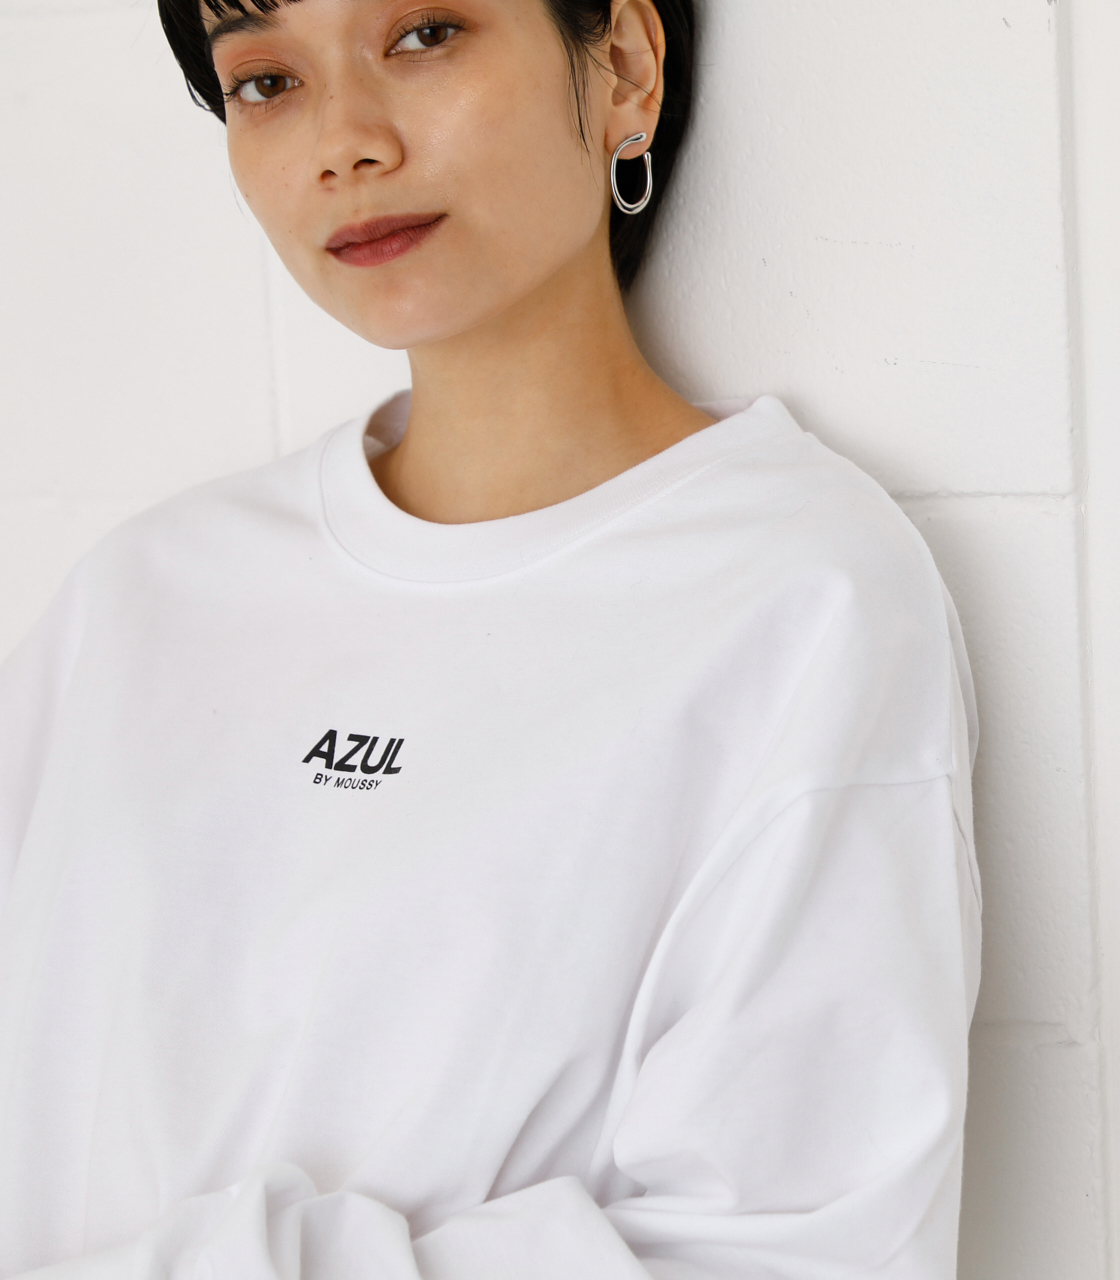 ONS SIMPLE LOGO TEE/ONSシンプルロゴTシャツ 詳細画像 WHT 4